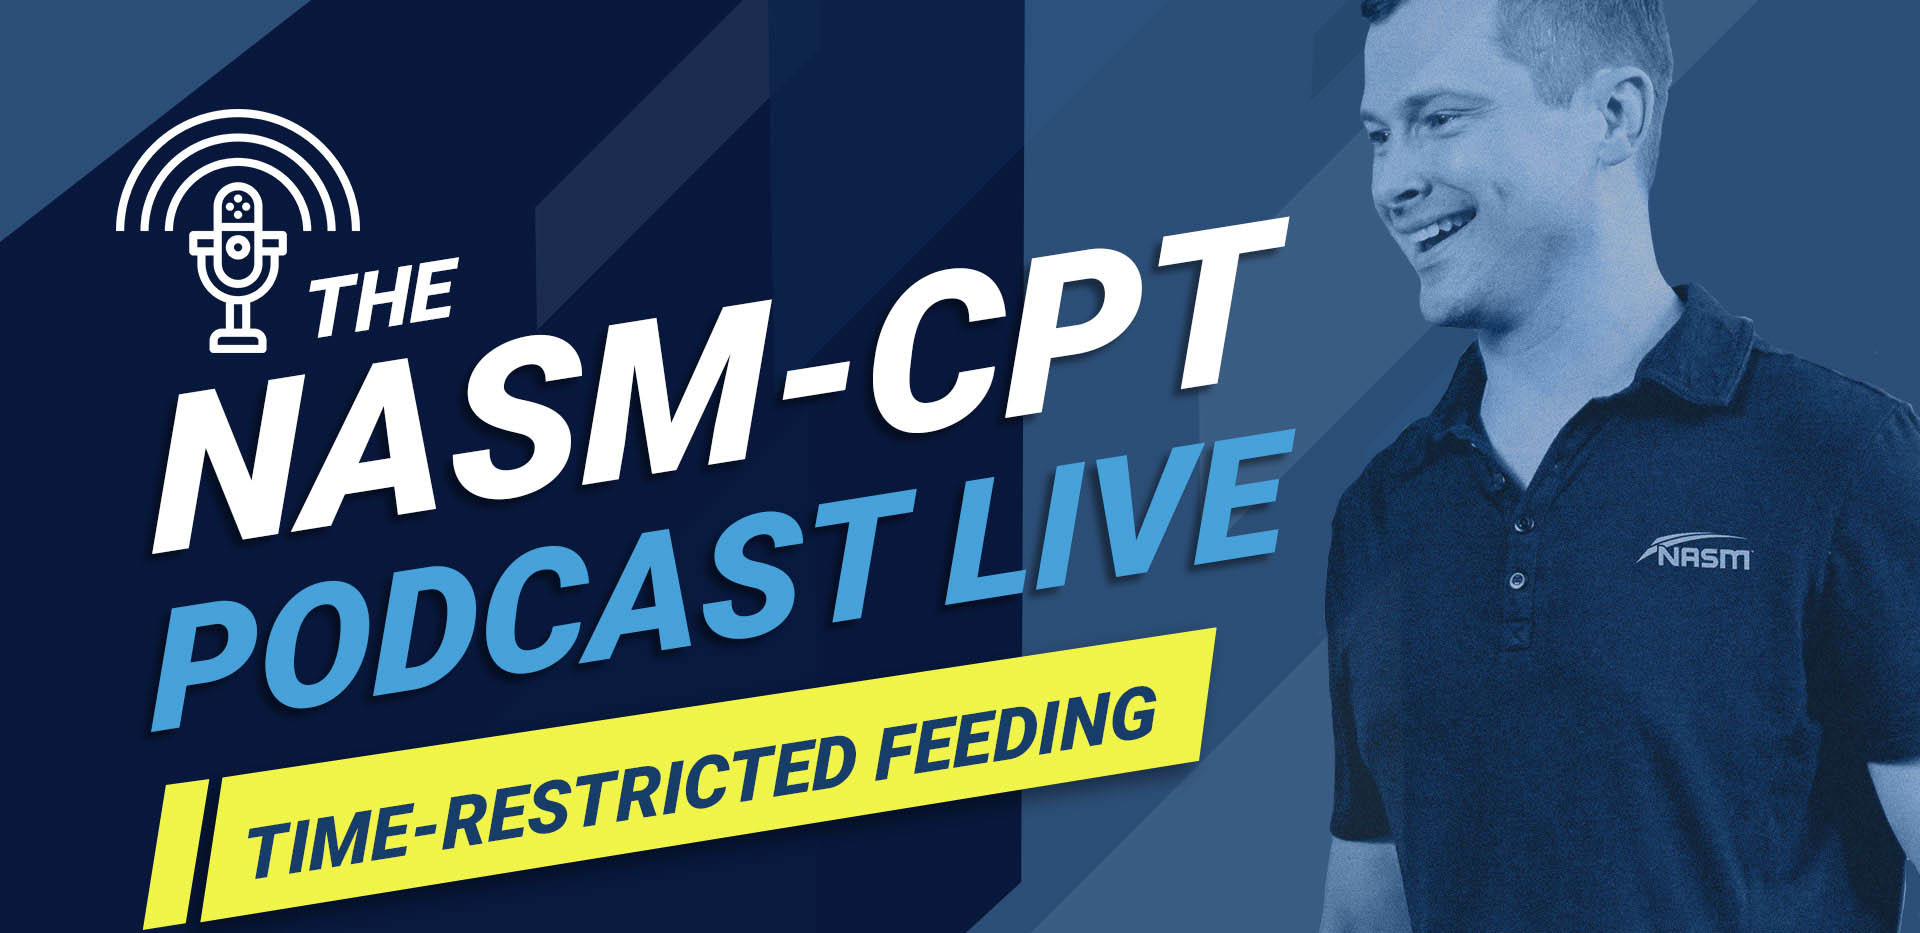 NASM-CPT Podcast: Time-Restricted Feeding